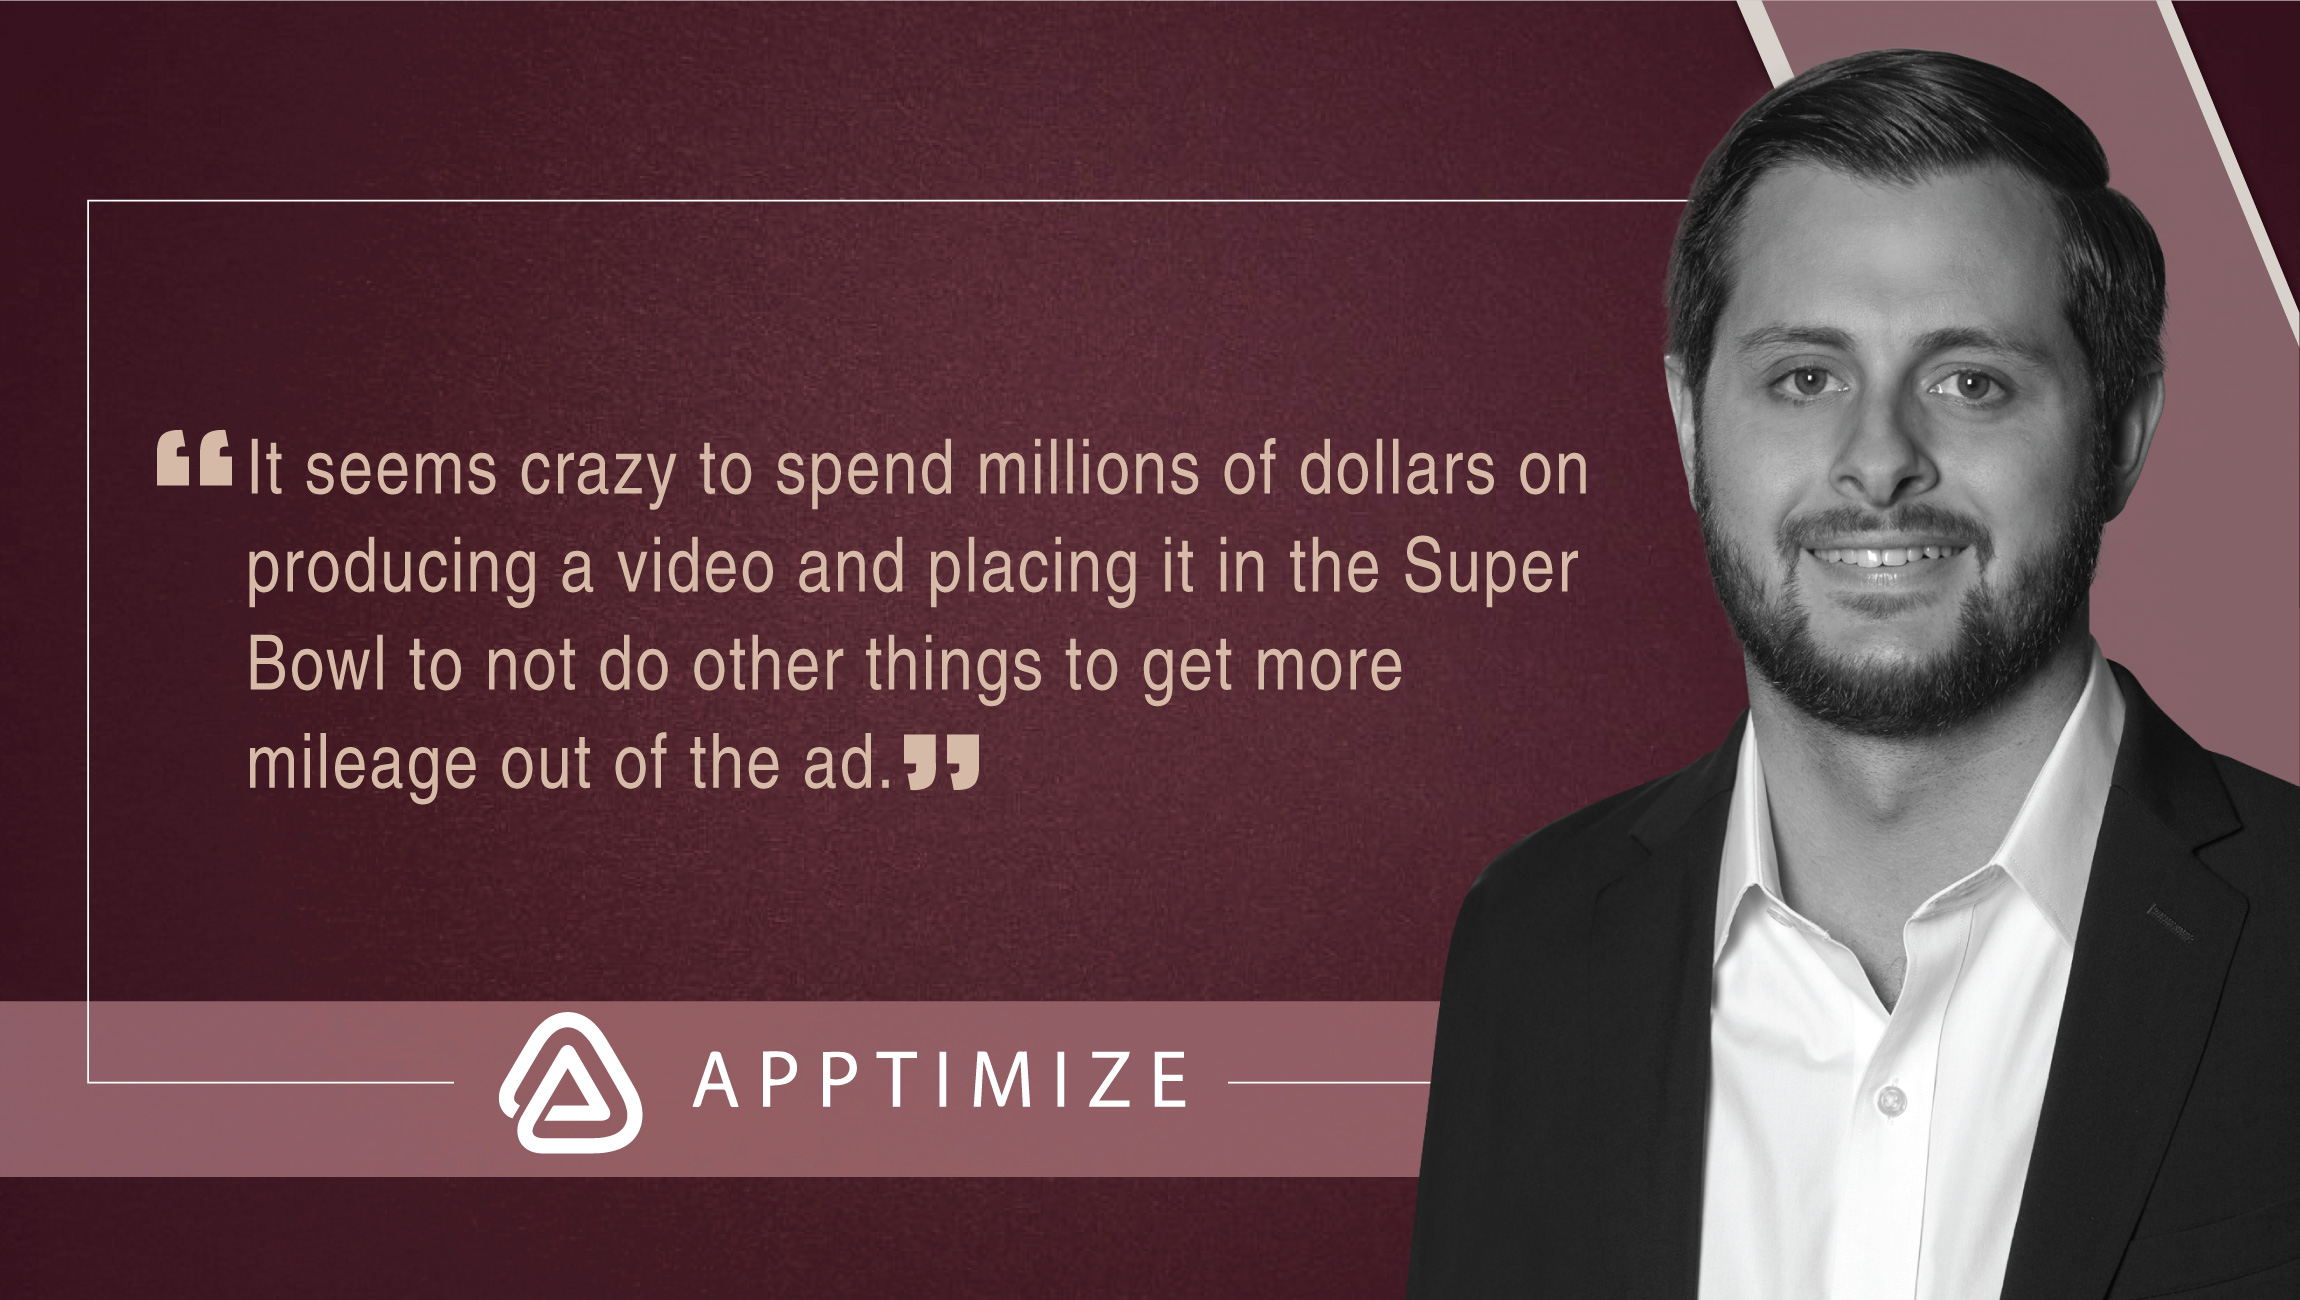 Scott Ings, VP Of Product, Apptimize